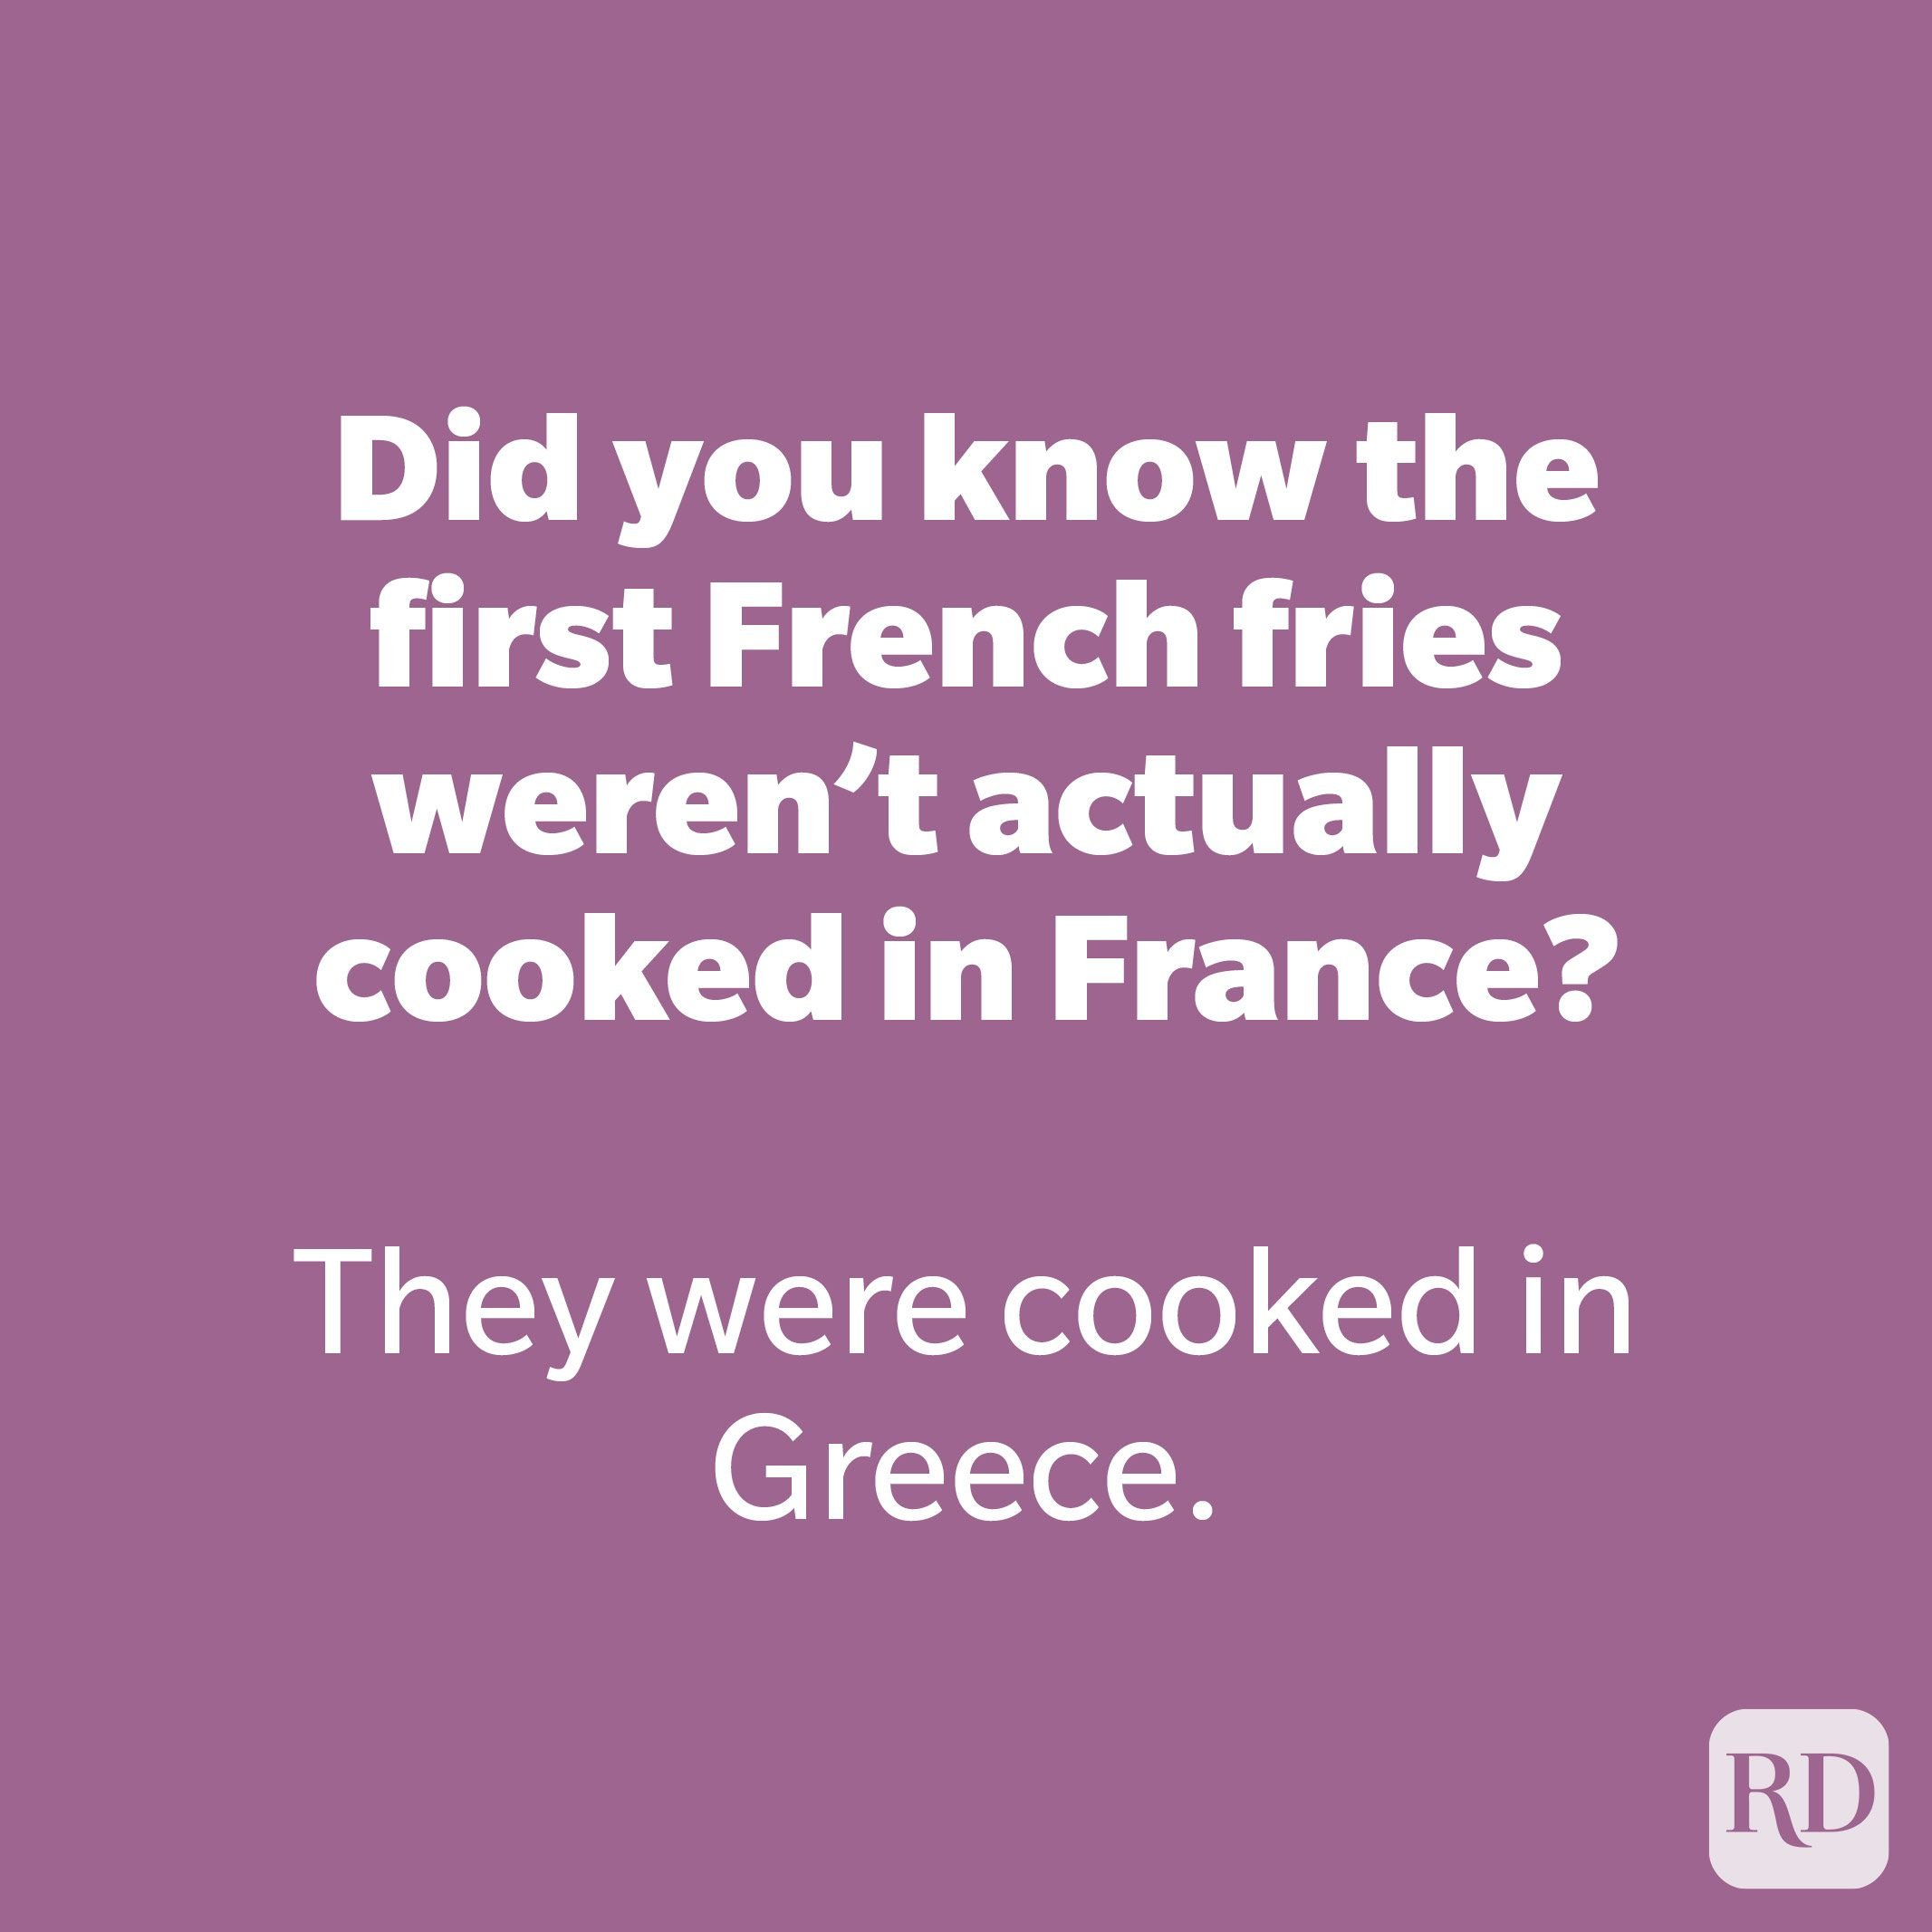 Did you know the first French fries weren't actually cooked in France?